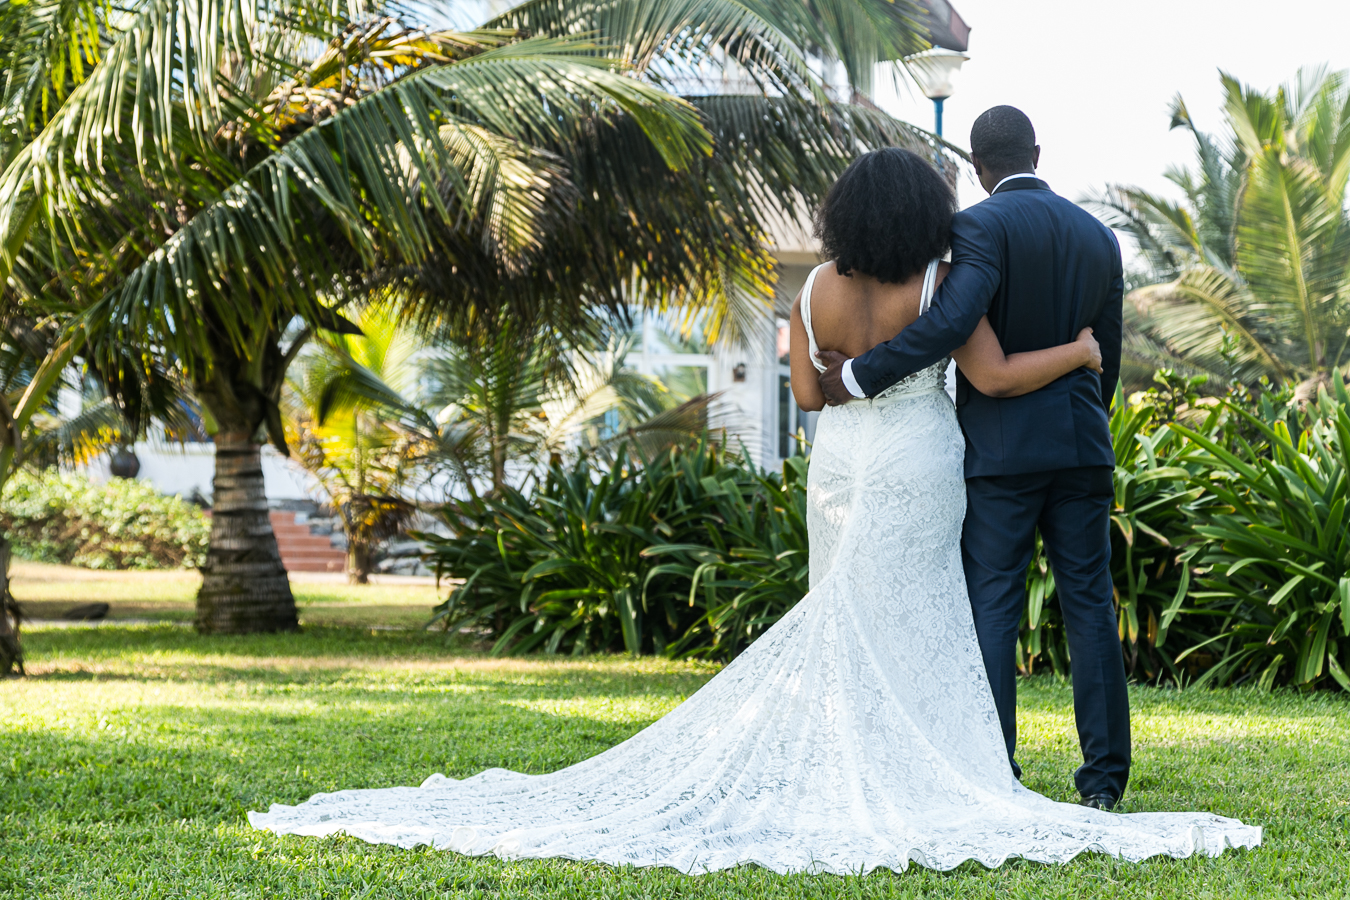 Weddings in Ghana - The Wedding of Shelly and Sigli